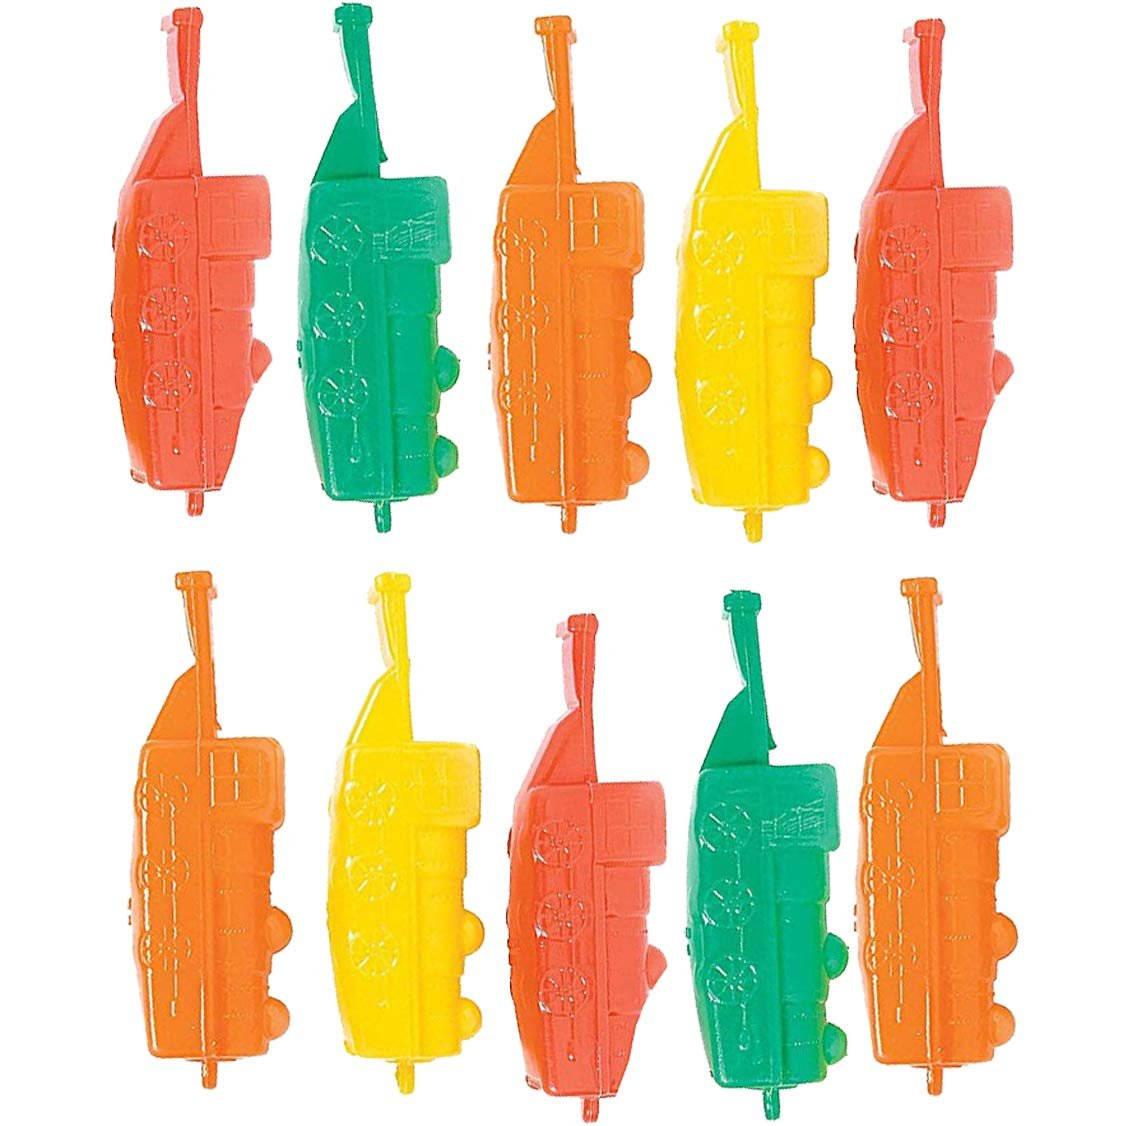 Plastic Train Whistles 4 Inches - Pack Of 10 - Assorted Colors Locomotive Train Shaped Whistles - For Kids Great Party Favors, Bag Stuffers, Fun, Toy, Gift, Prize, Piñata Fillers - By Kidsco